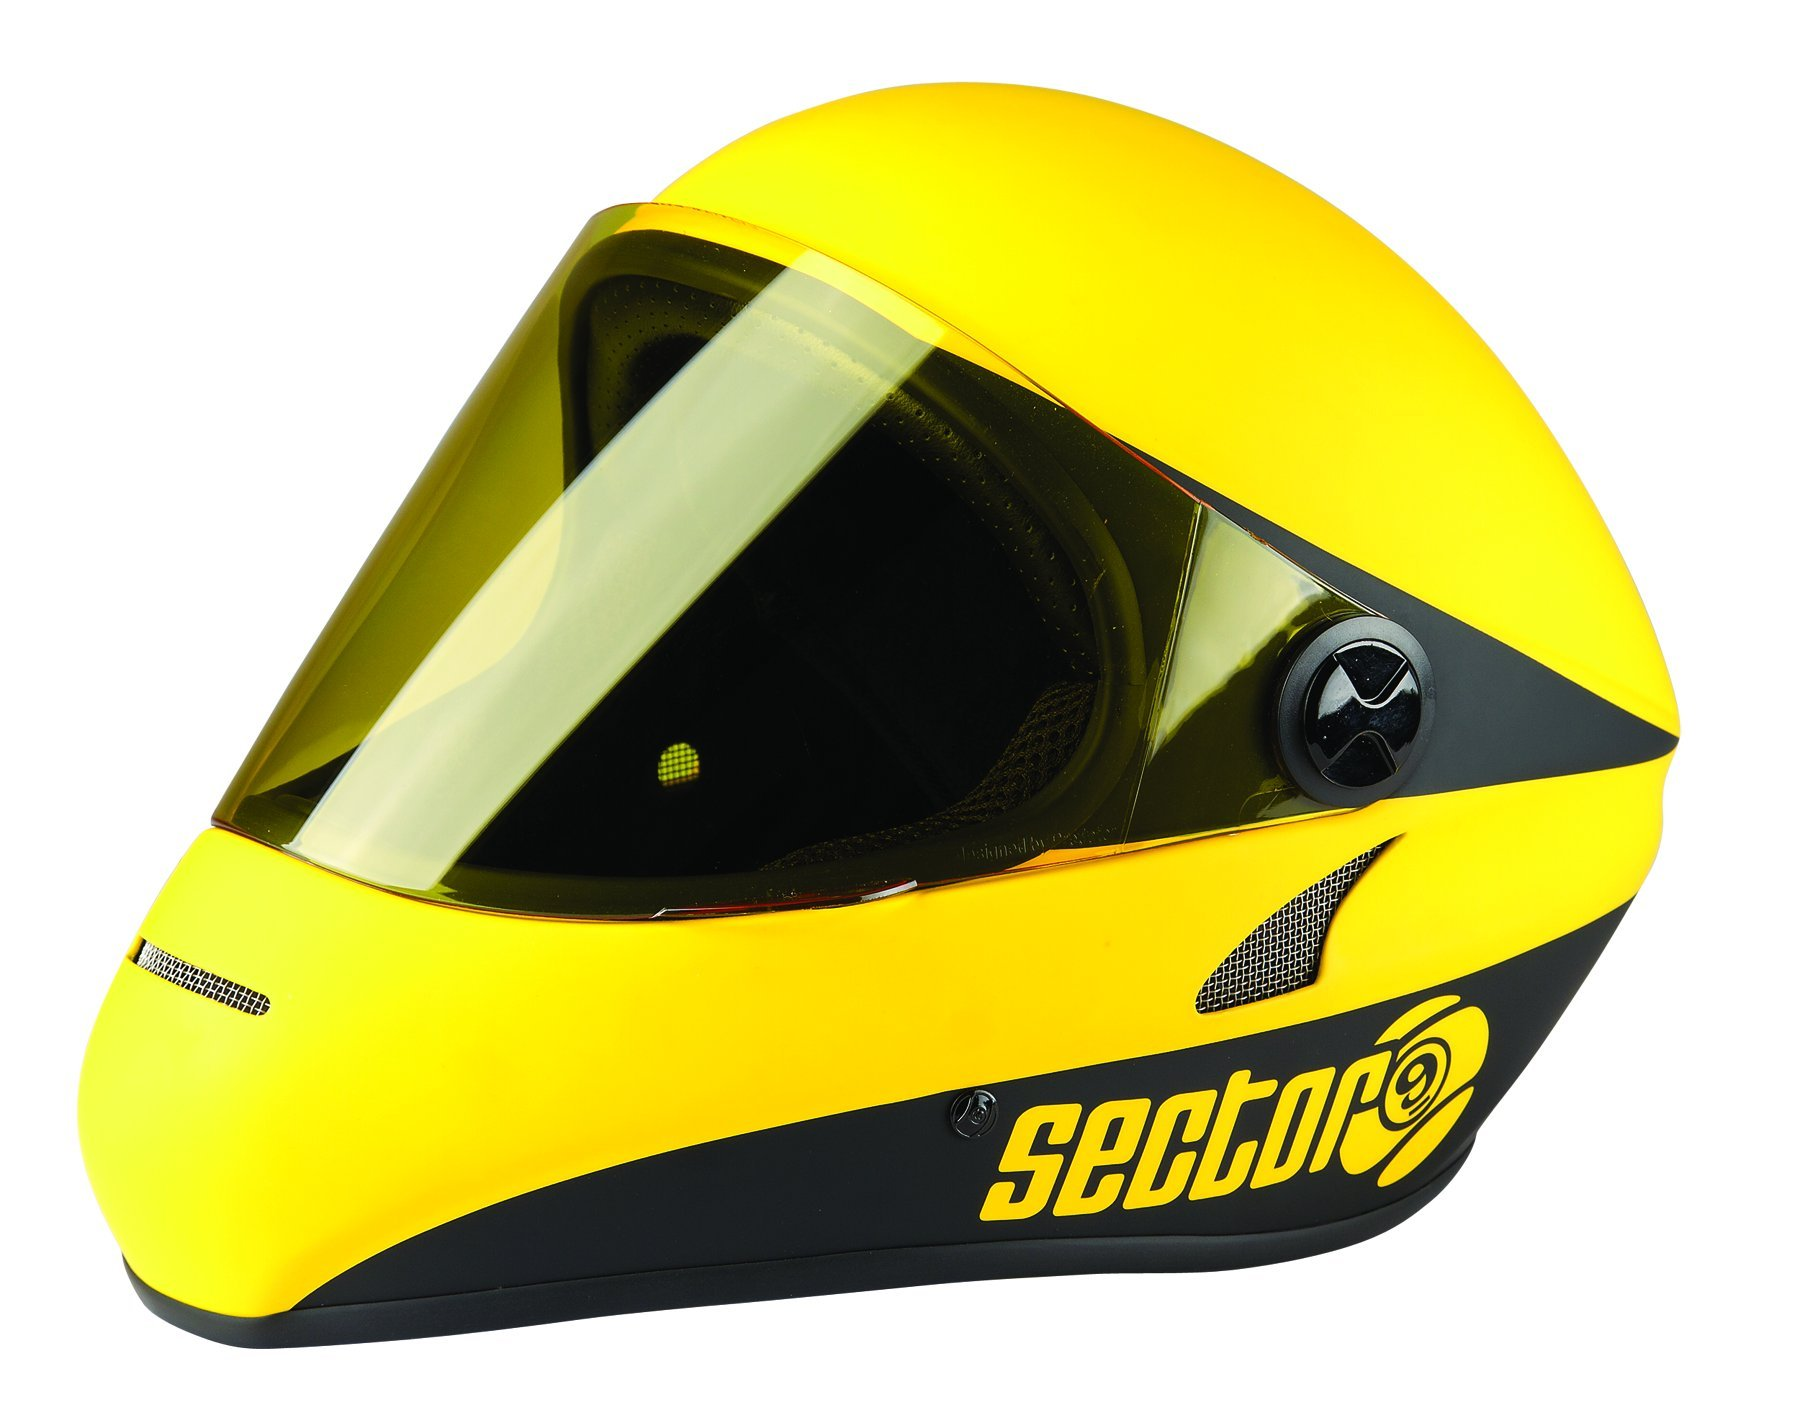 Sector 9 Drift Downhill Full Face Helmet, Yellow by Sector 9